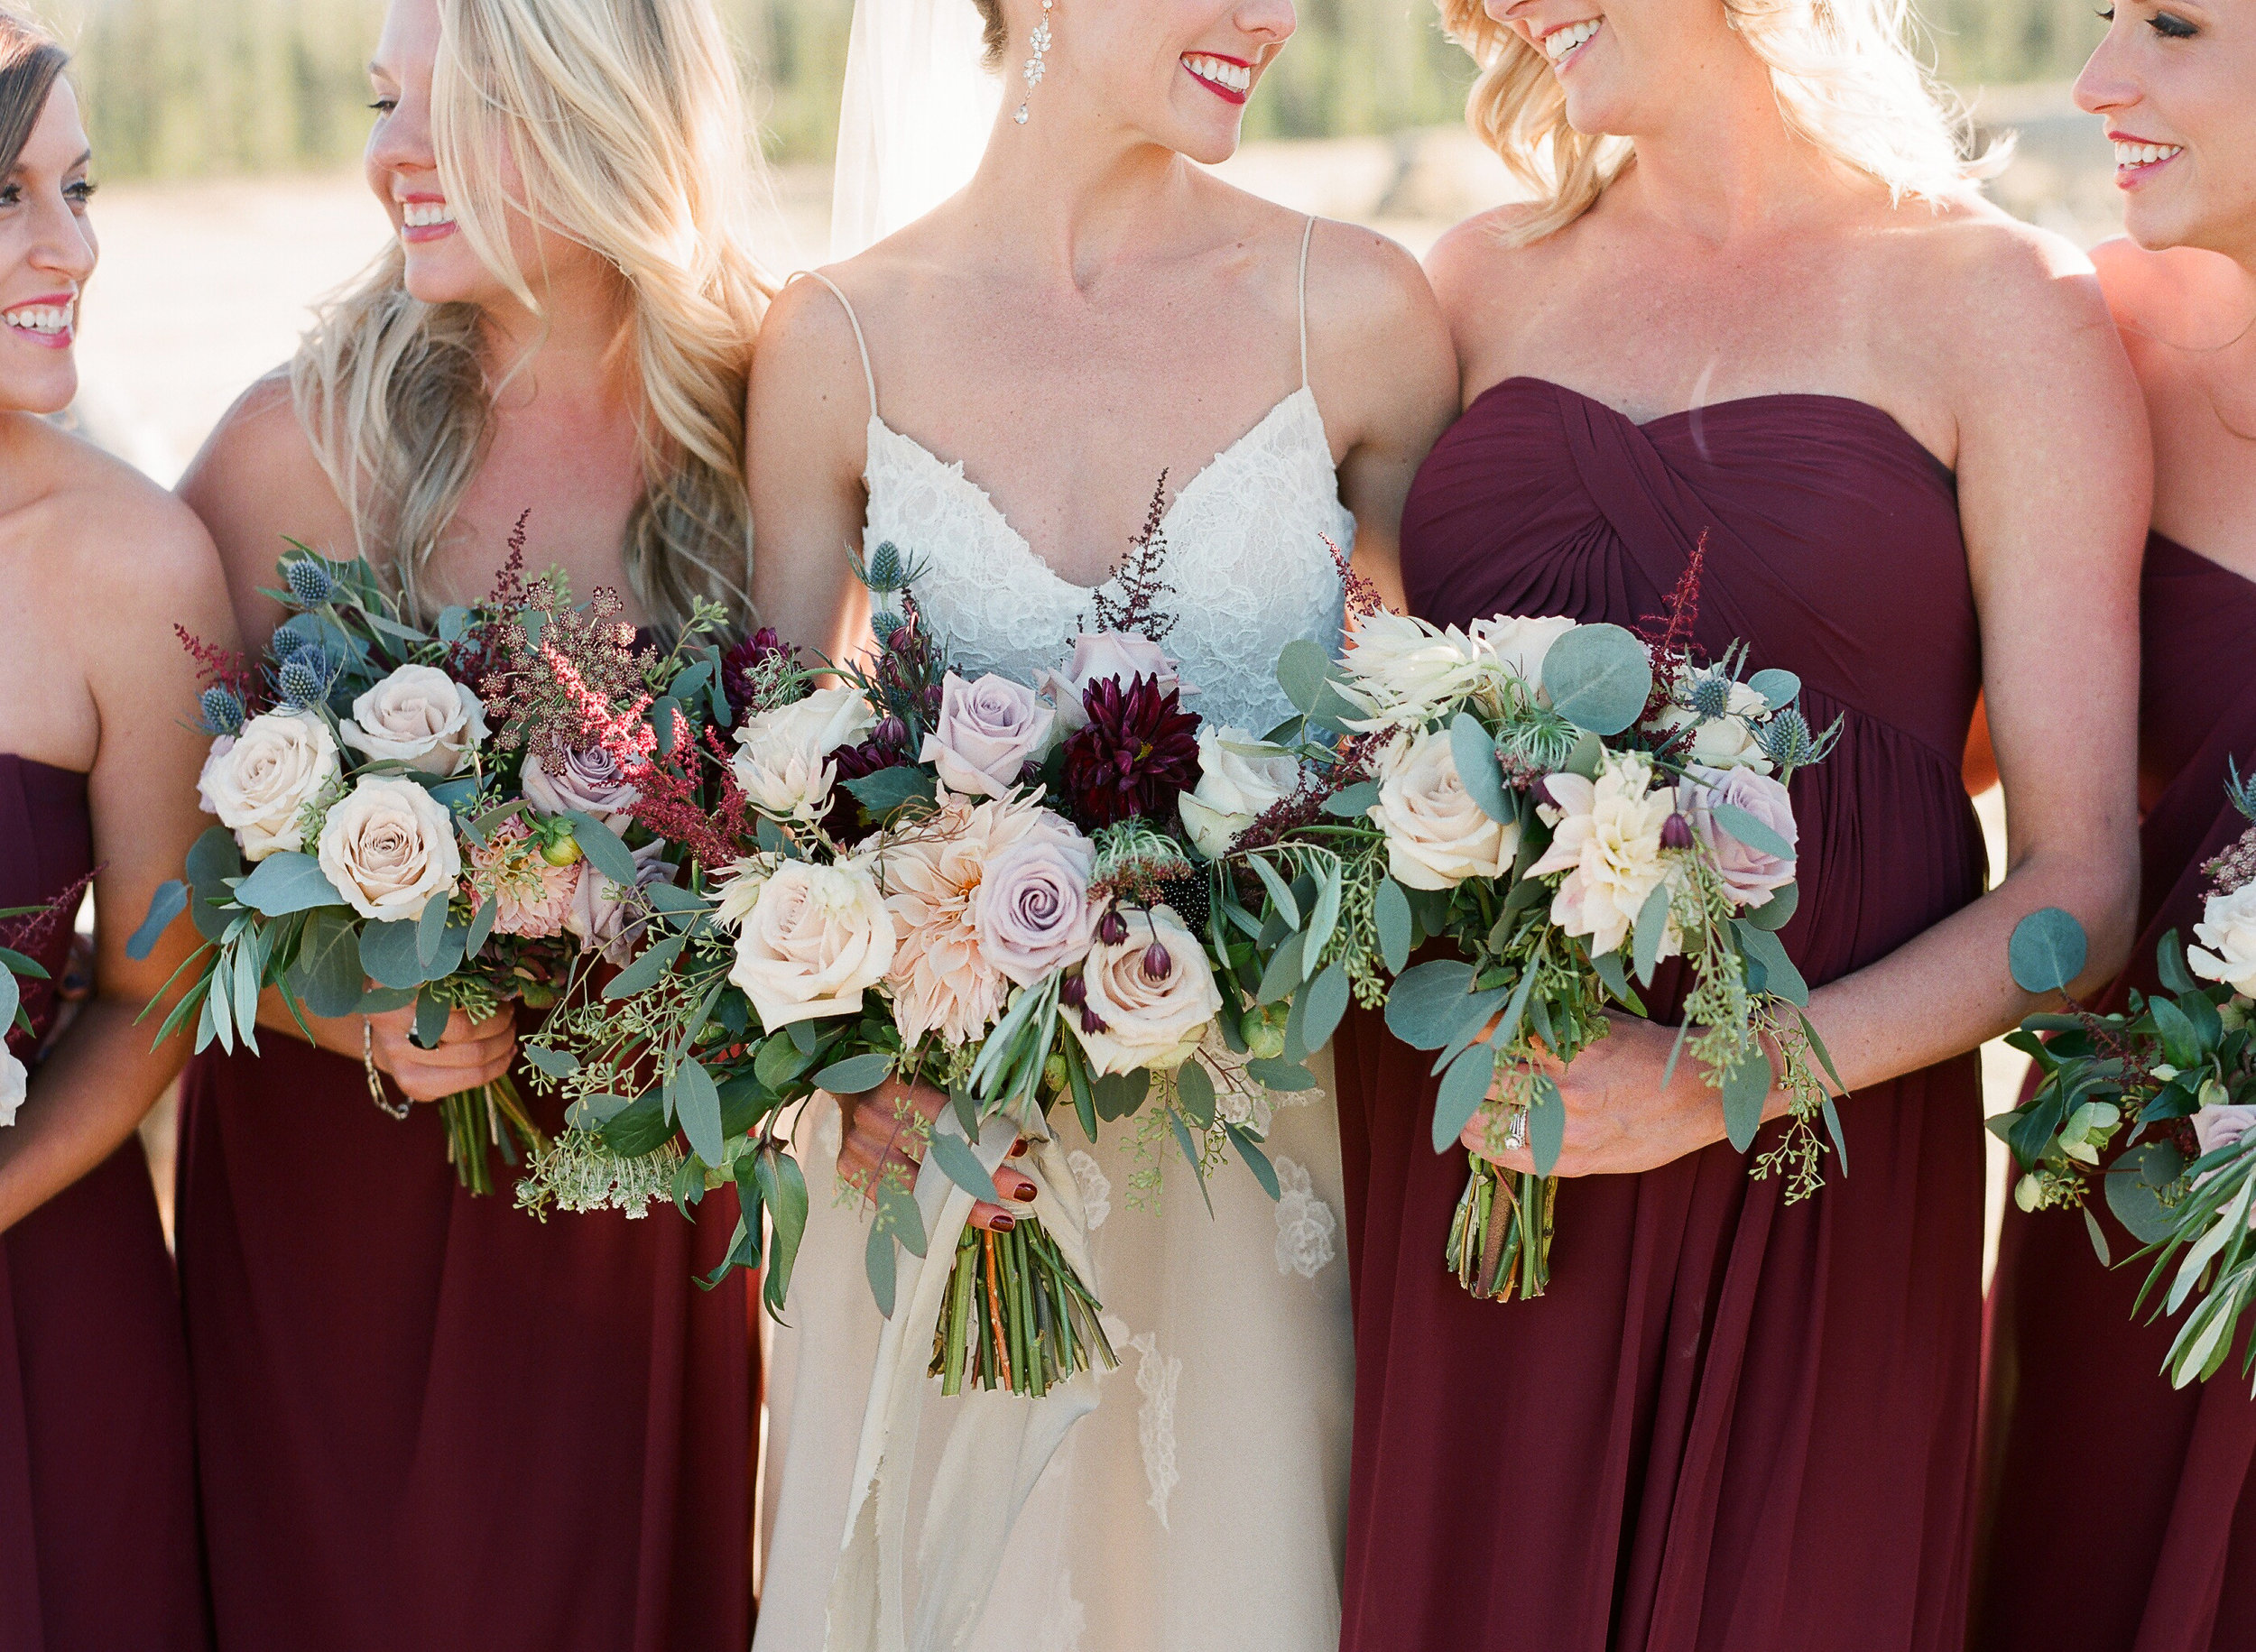 Flowers by Lace and Lilies, wedding flowers, greenery, foliage burgundy flowers, burgundy bridesmaid gowns, flowers, bridesmaid, bridal bouquet, bride tribe